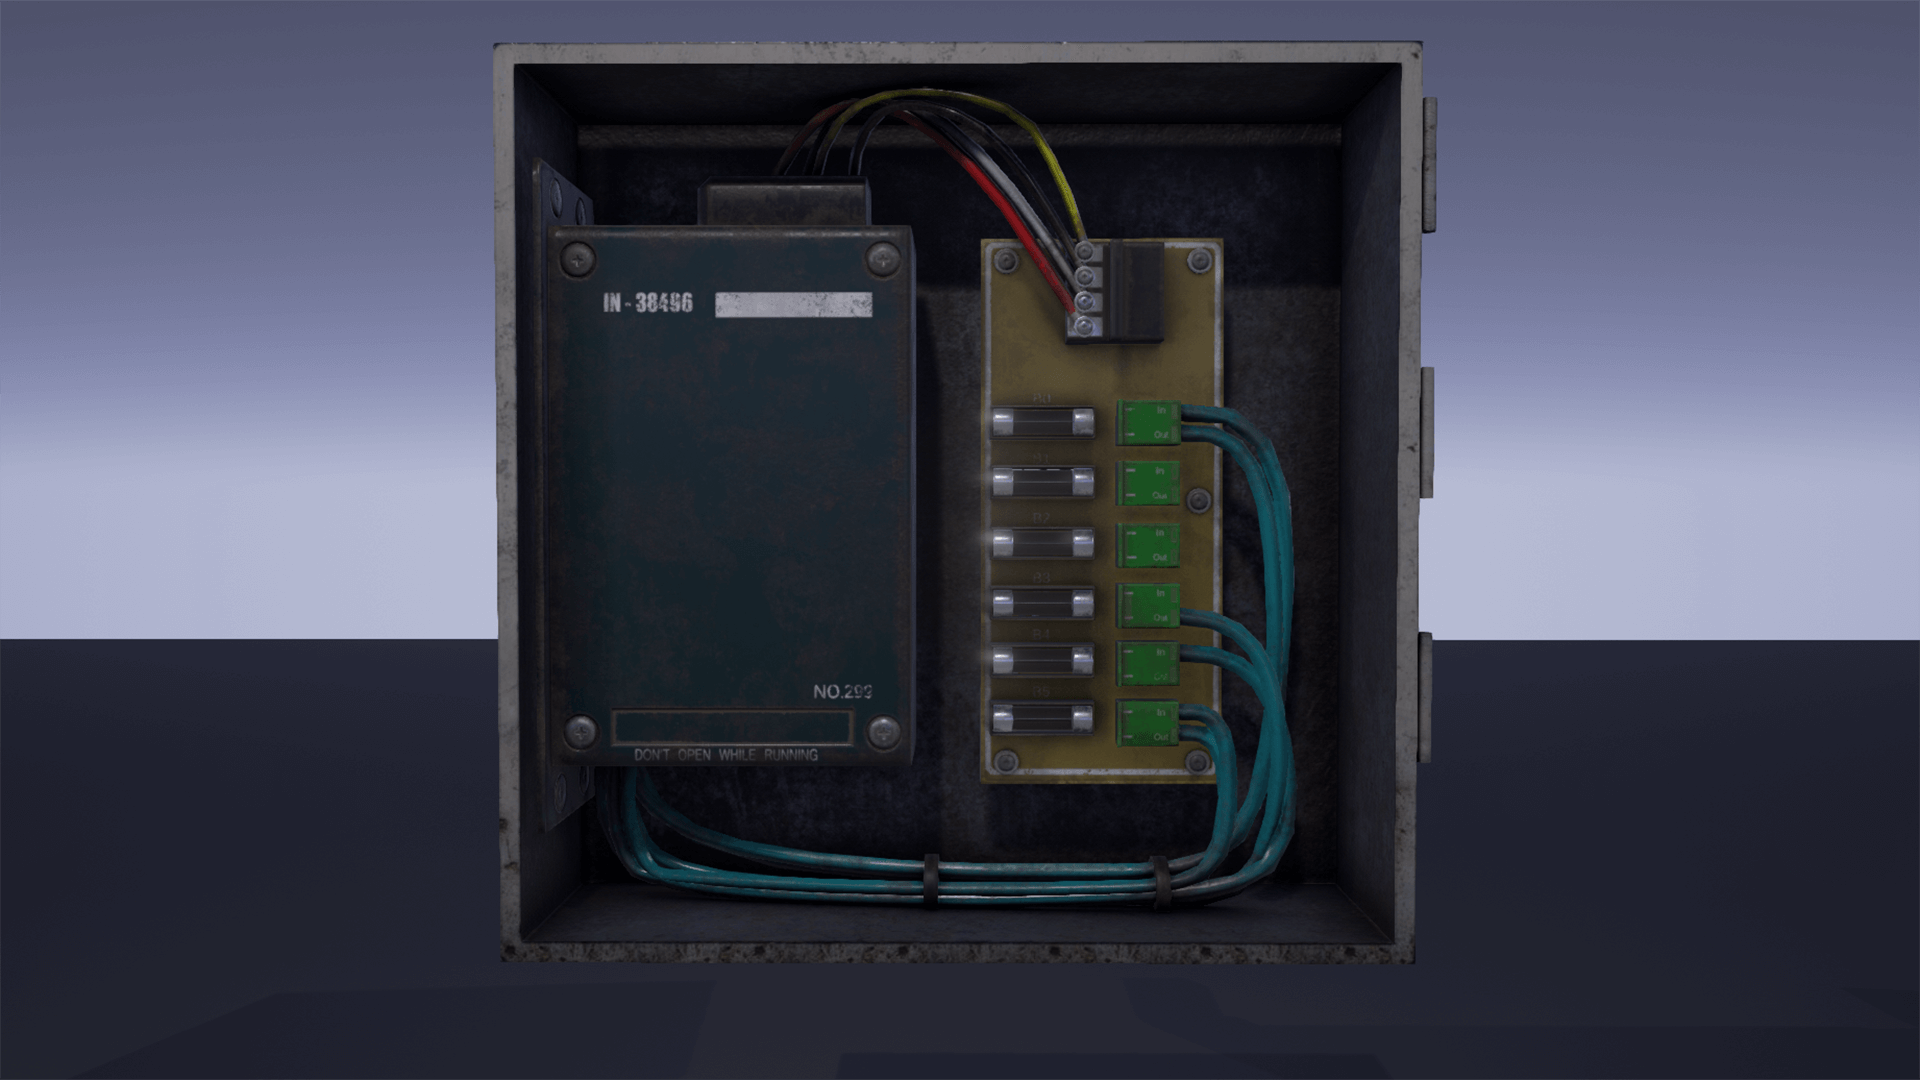 Fuseboxpack_screenshot04 1920x1080 d31206874a8d653369289aa61fef828e fuse box pack by hyoungjo kim in props ue4 marketplace open fuse box for ford expedition at edmiracle.co